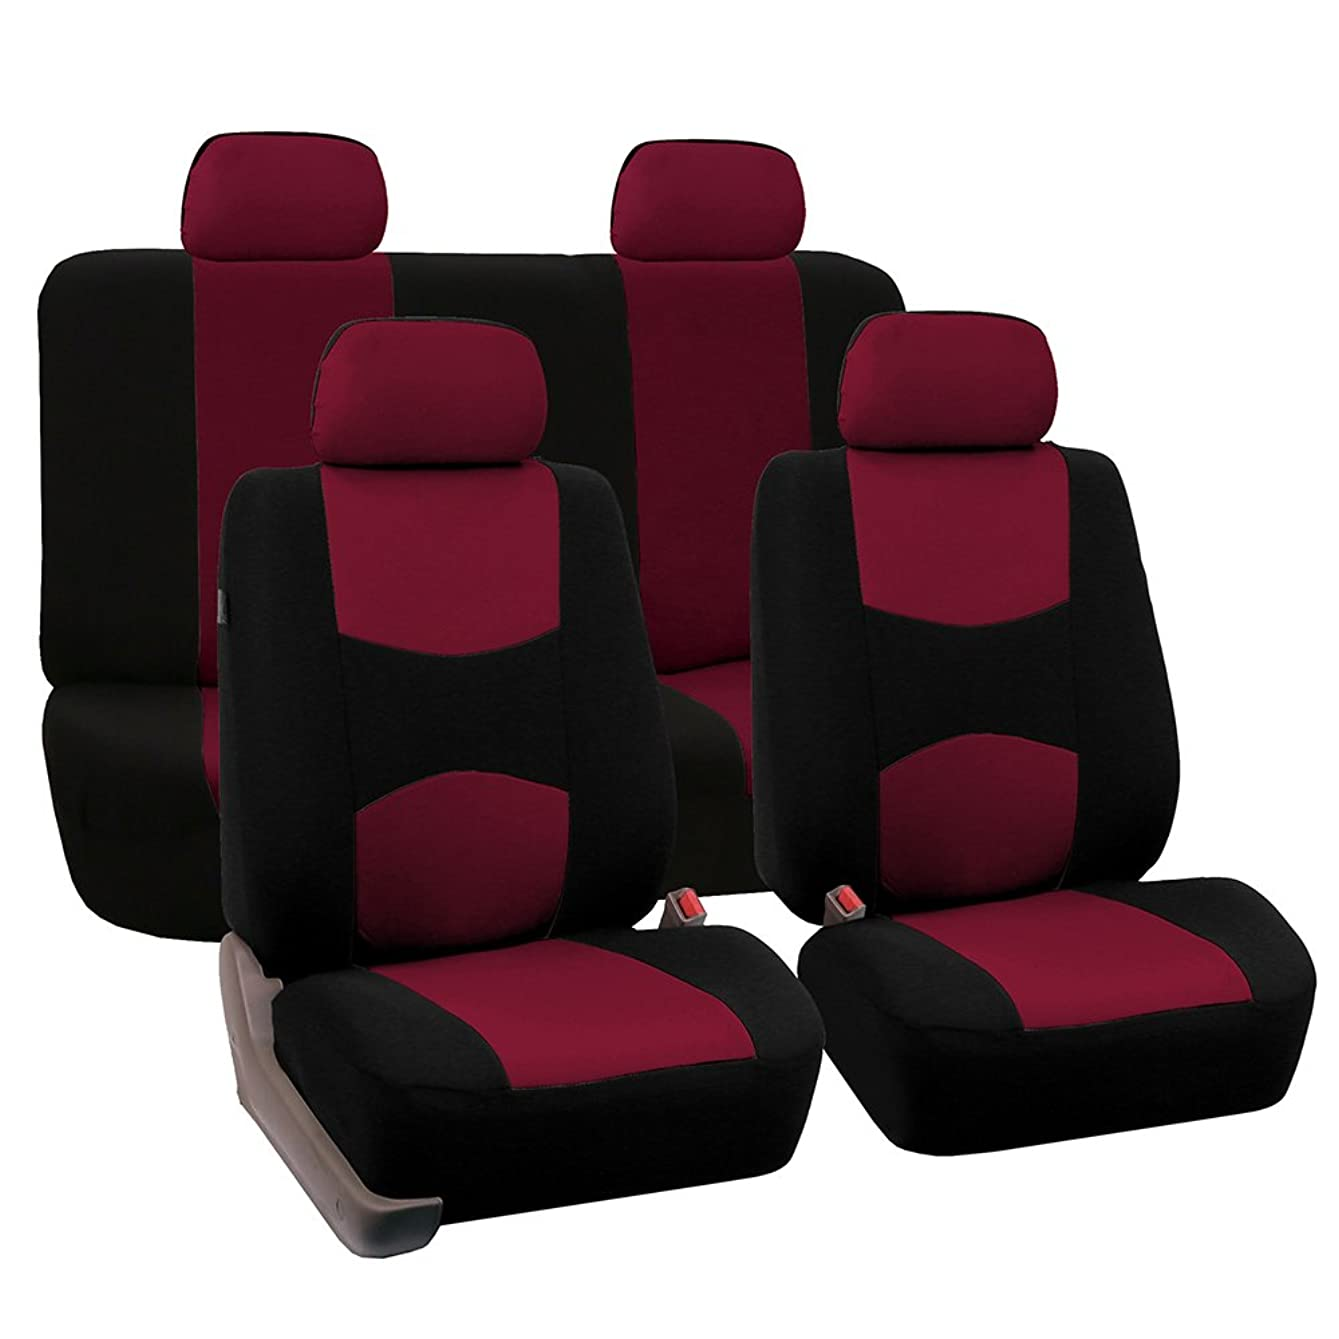 FH Group Universal Fit Full Set Flat Cloth Fabric Car Seat Cover, (Burgundy/Black) (FH-FB050114, Fit Most Car, Truck, Suv, or Van) drosbj085720